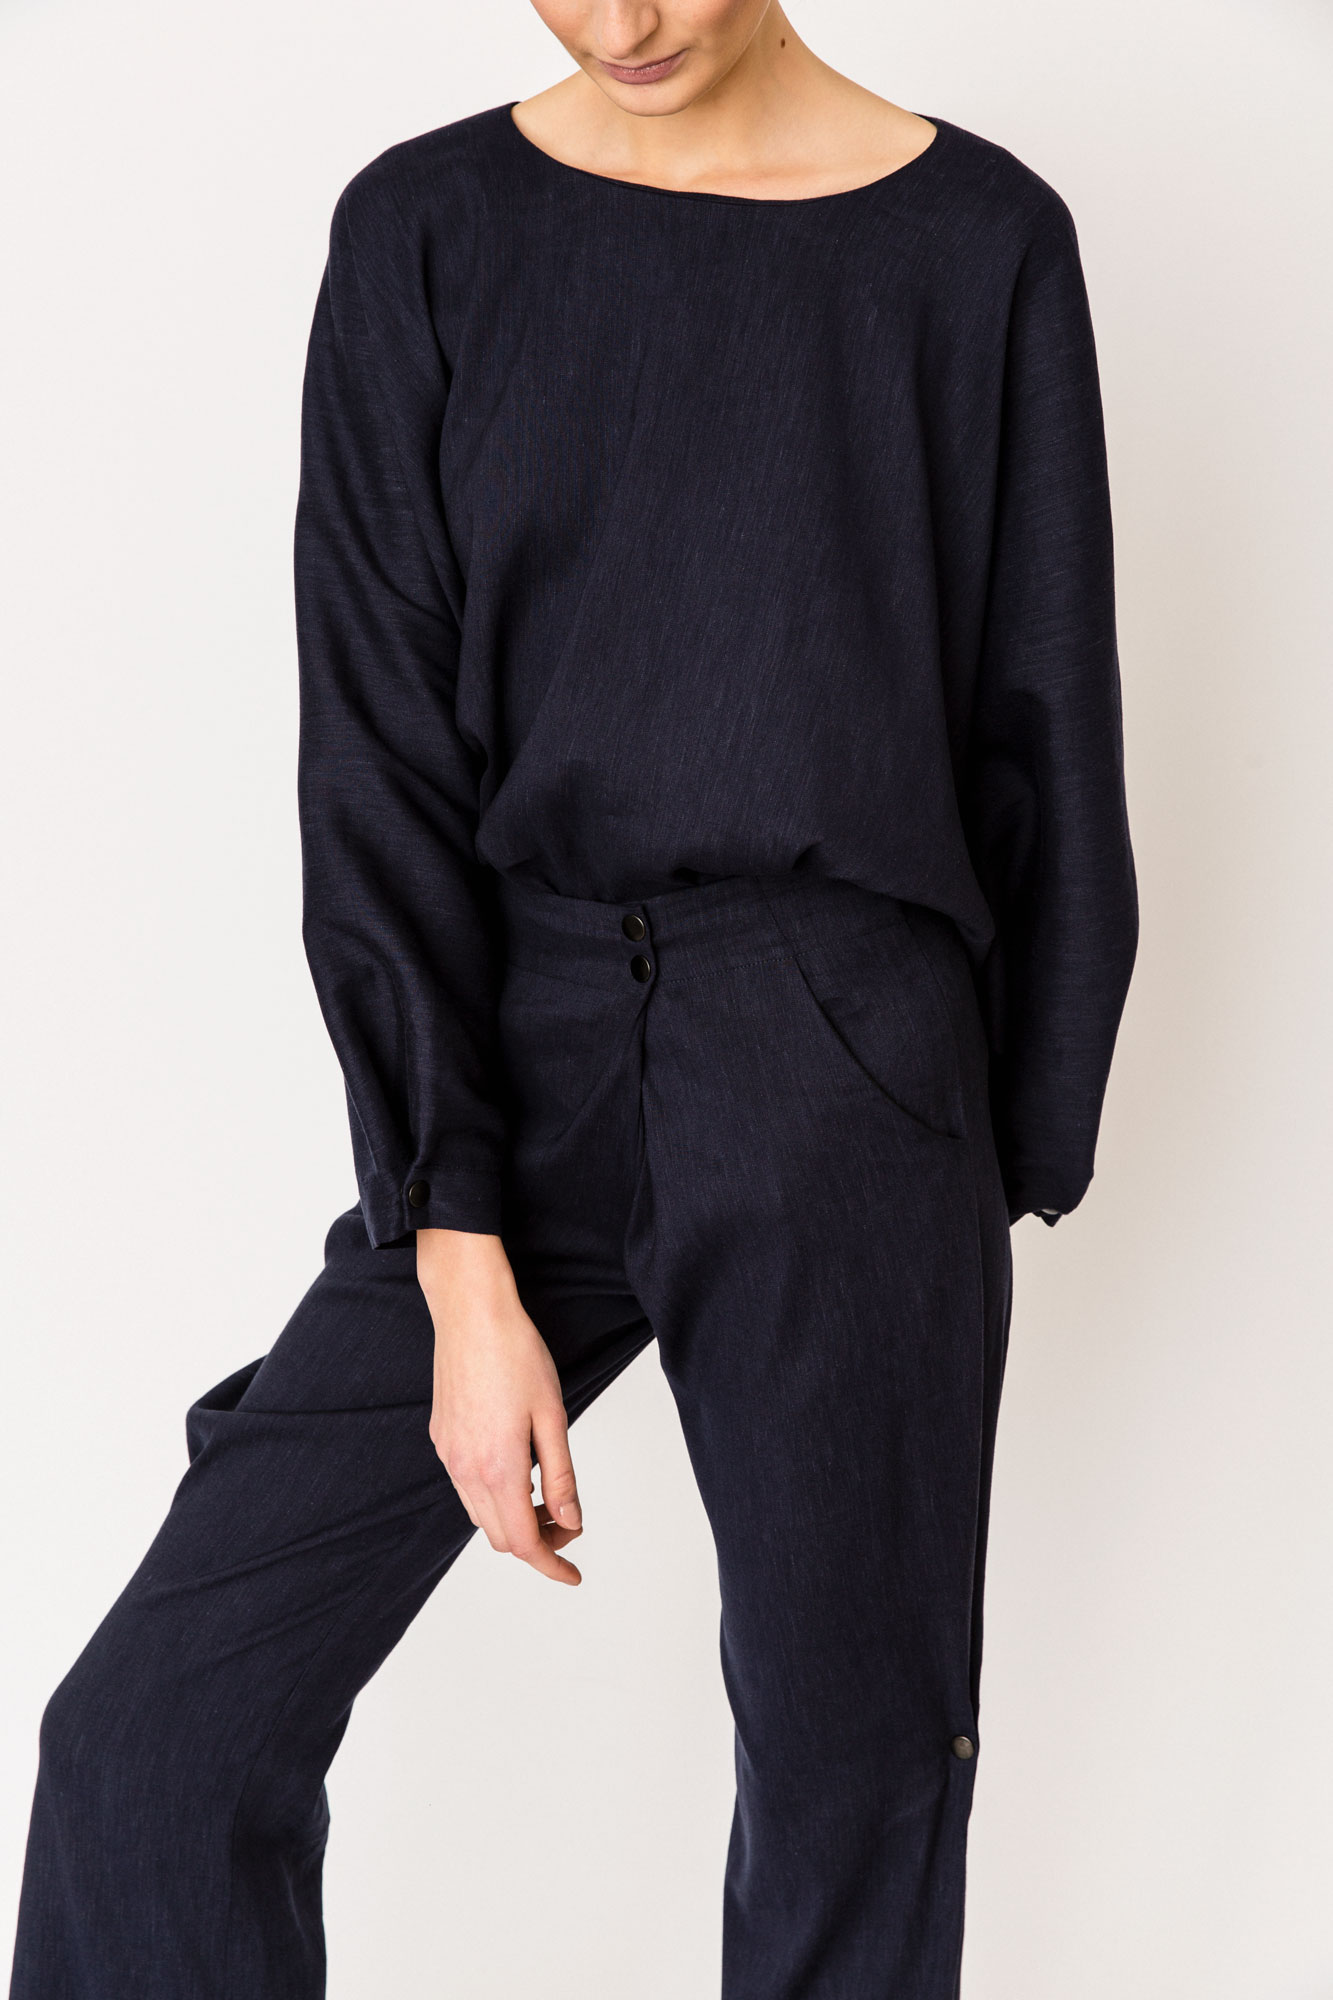 S18-11Agape_Trousers8